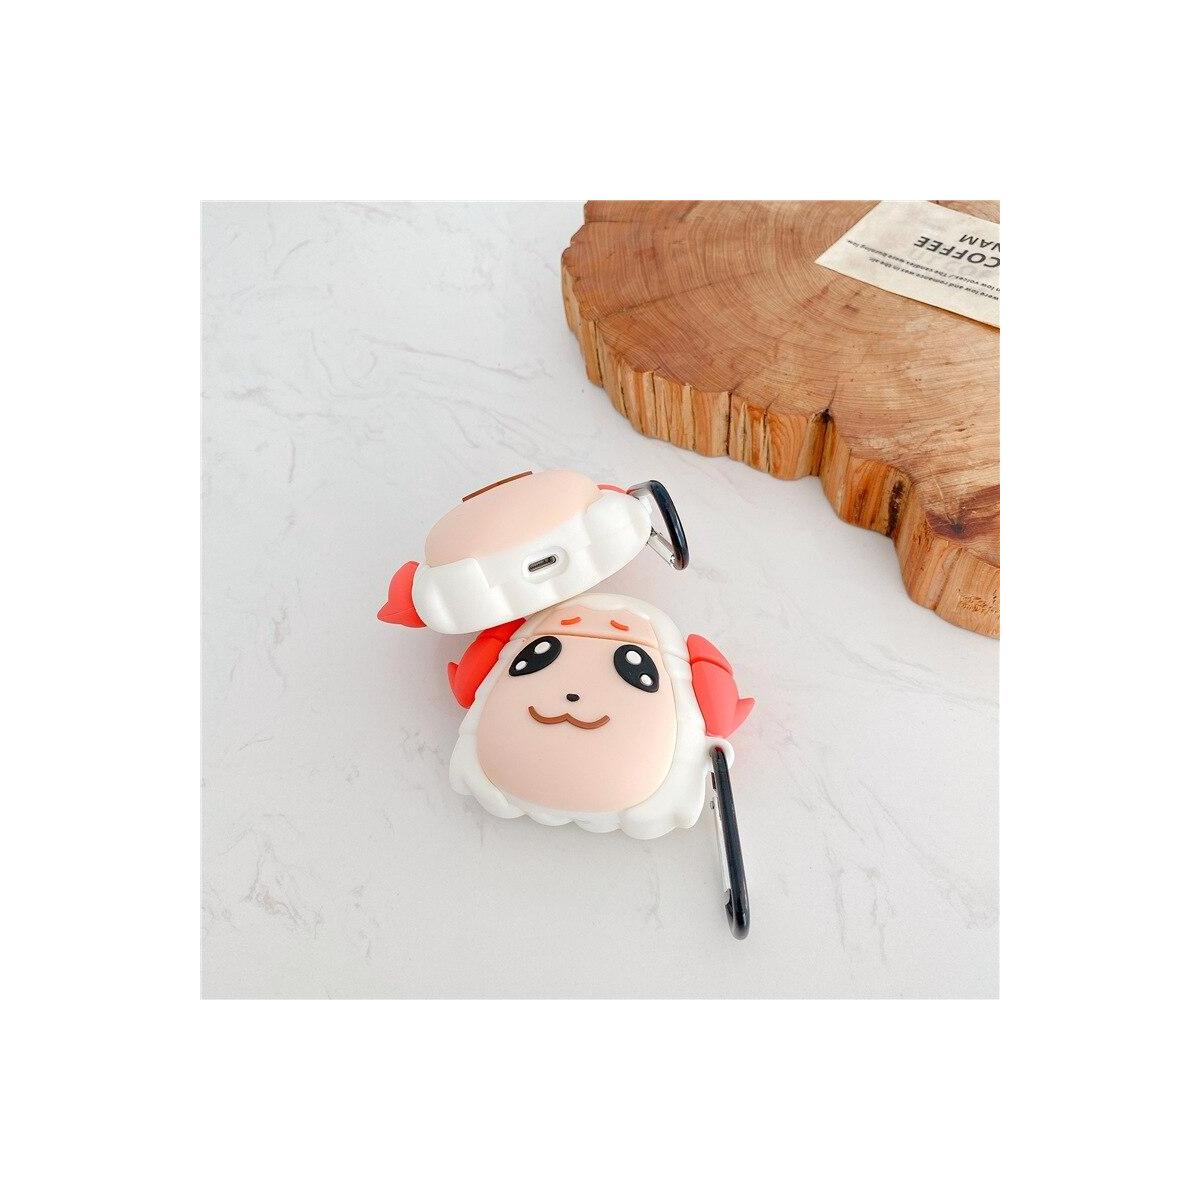 Animal Crossing Dom Headphone Case For AirPods, For AirPods 2